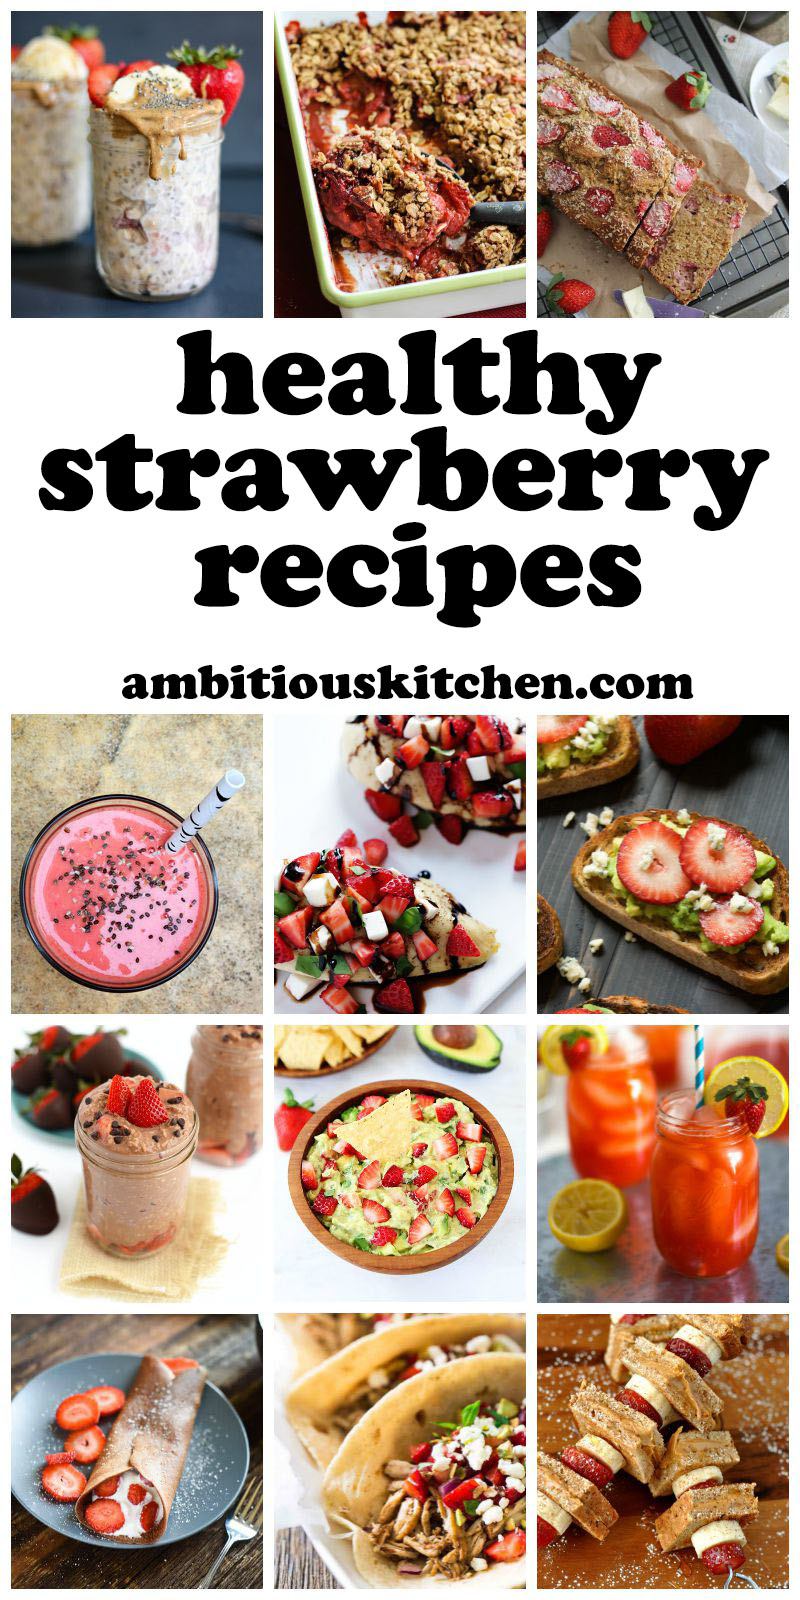 Healthy Strawberry Recipes from ambitiouskitchen.com